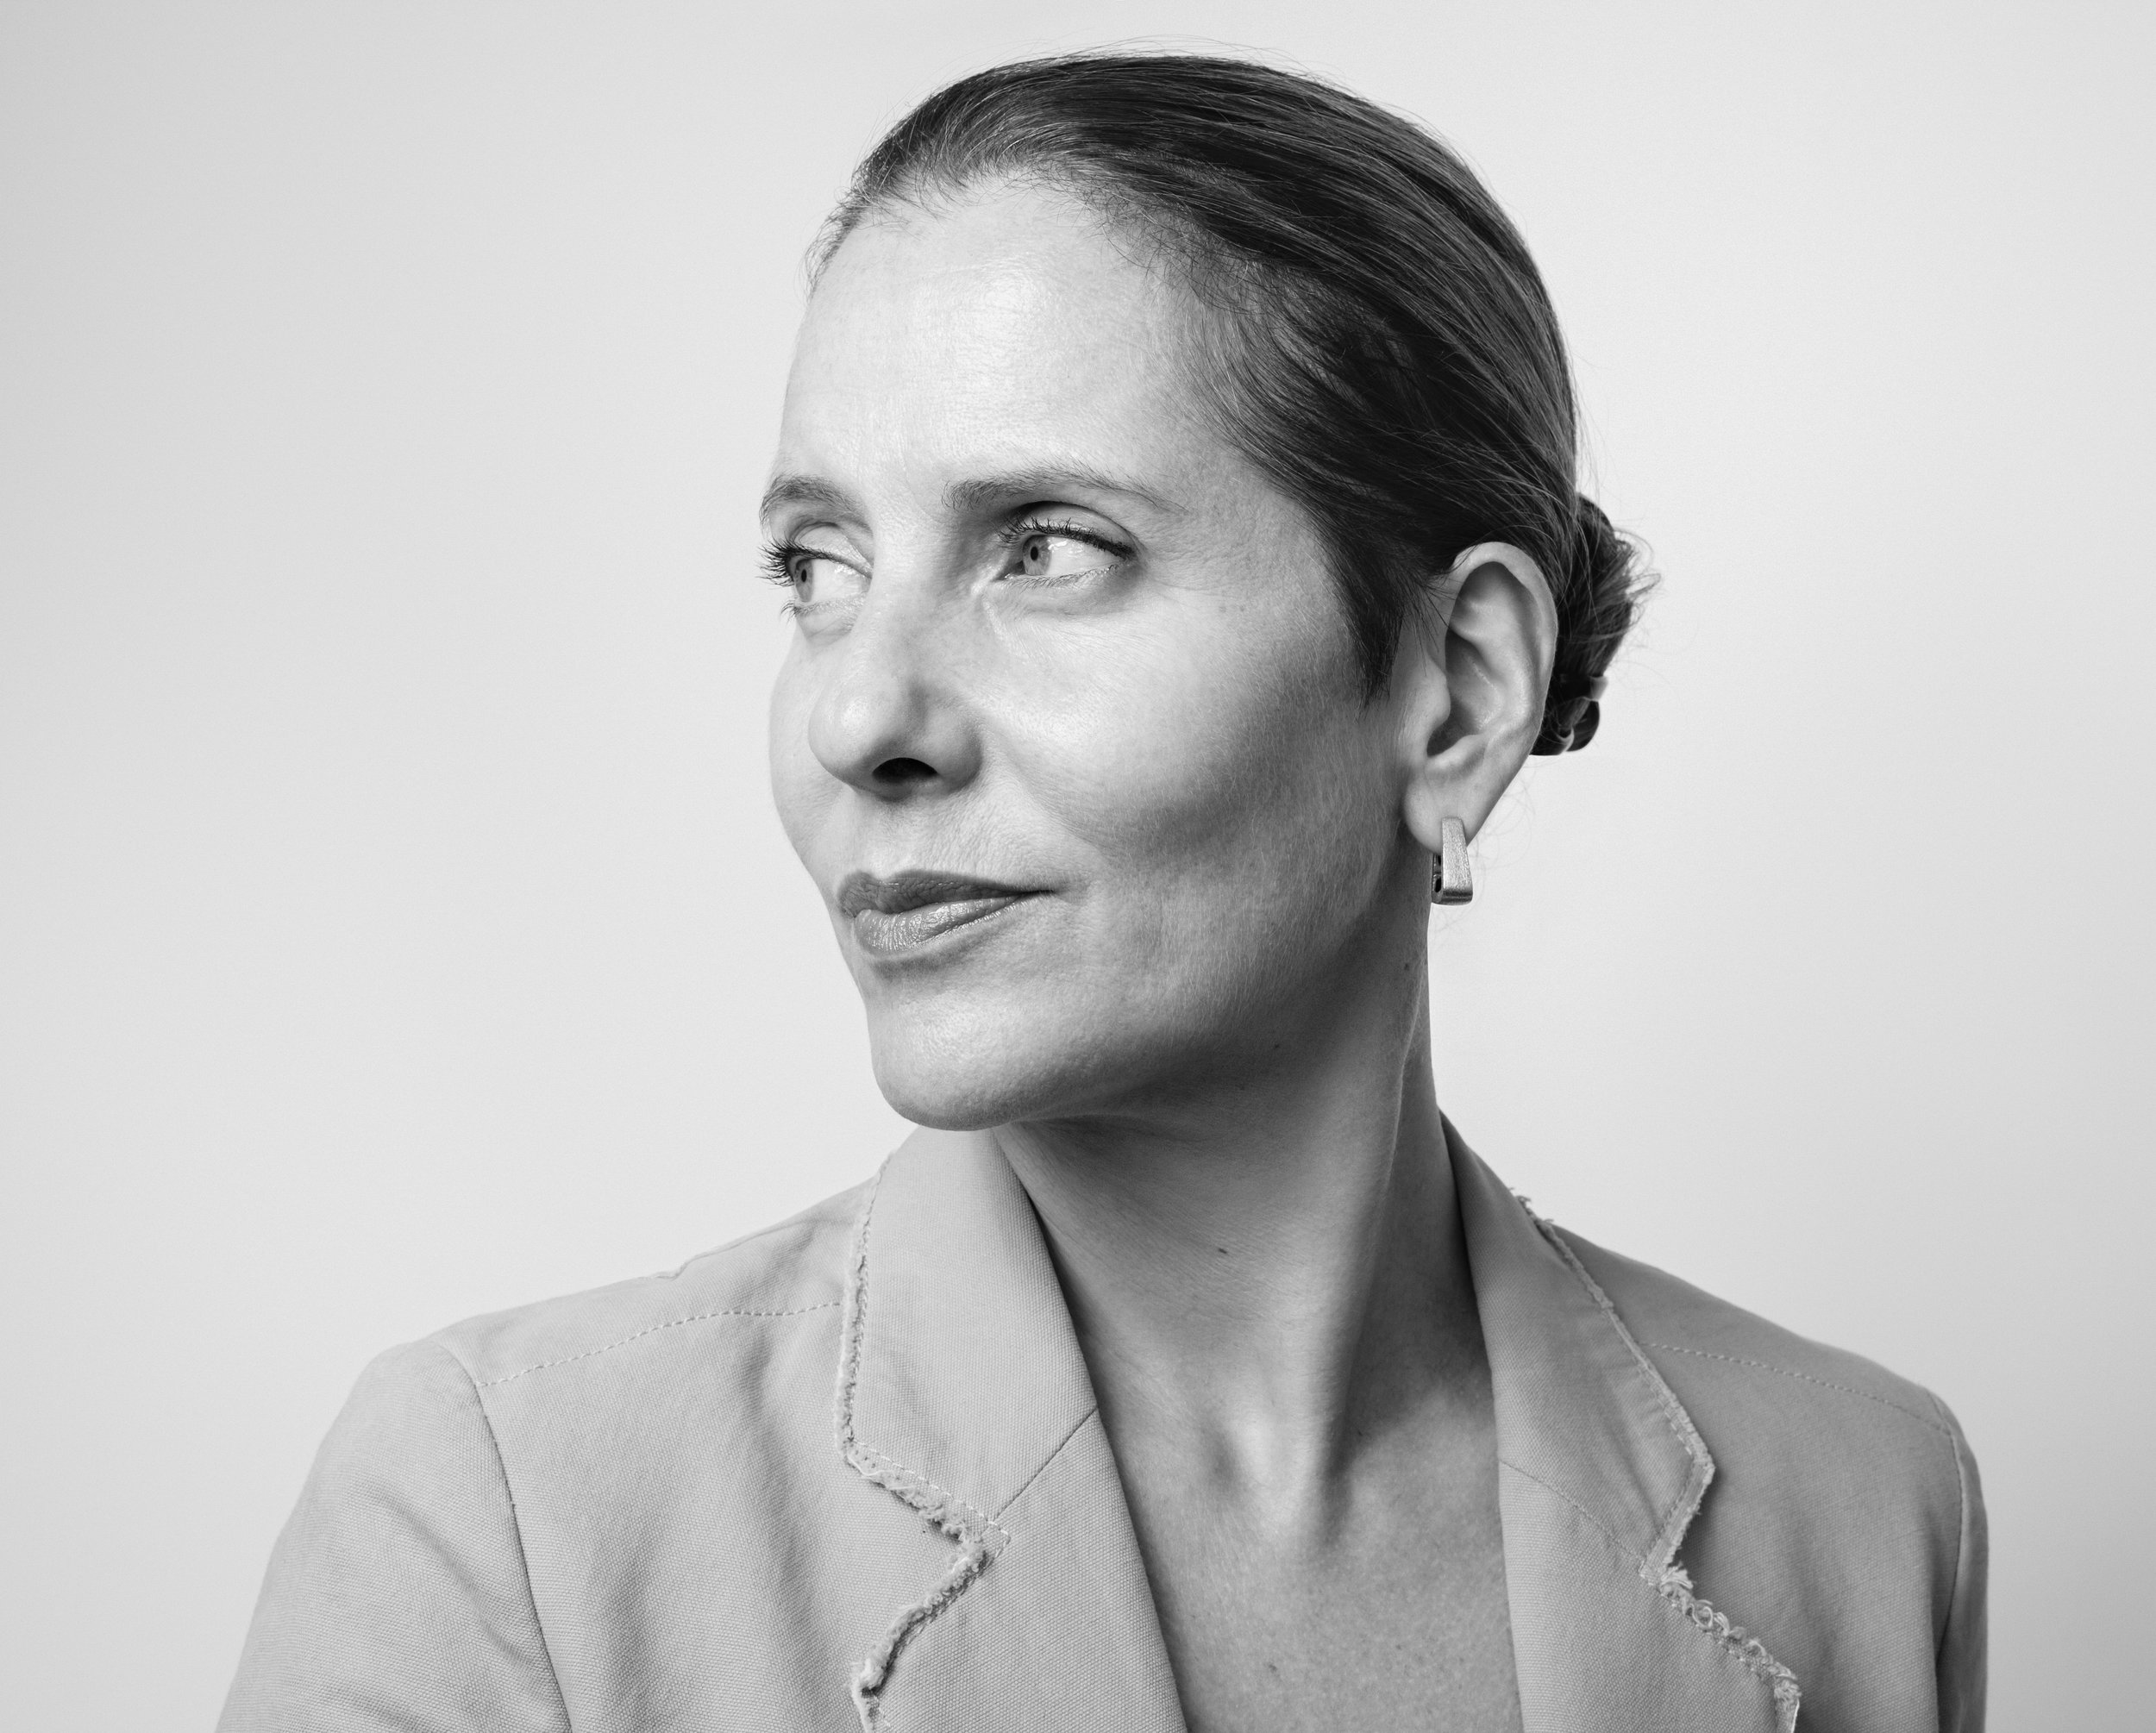 """Paola Antonelli - Paola Antonelli is senior curator in the department of architecture and design of the Museum of Modern Art, where she has worked since 1994. She is the recipient of a Master's degree in Architecture from the Polytechnic of Milan in 1990. She is a Senior Fellow with the Royal College of Art, and received an Honorary Doctorate in Design from Kingston University, and from the Art Center College of Design. She also earned the """"Design Mind"""" Smithsonian Institution's National Design Award in October 2006, and in 2007 she was named one of the 25 most incisive design visionaries by Time Magazine."""